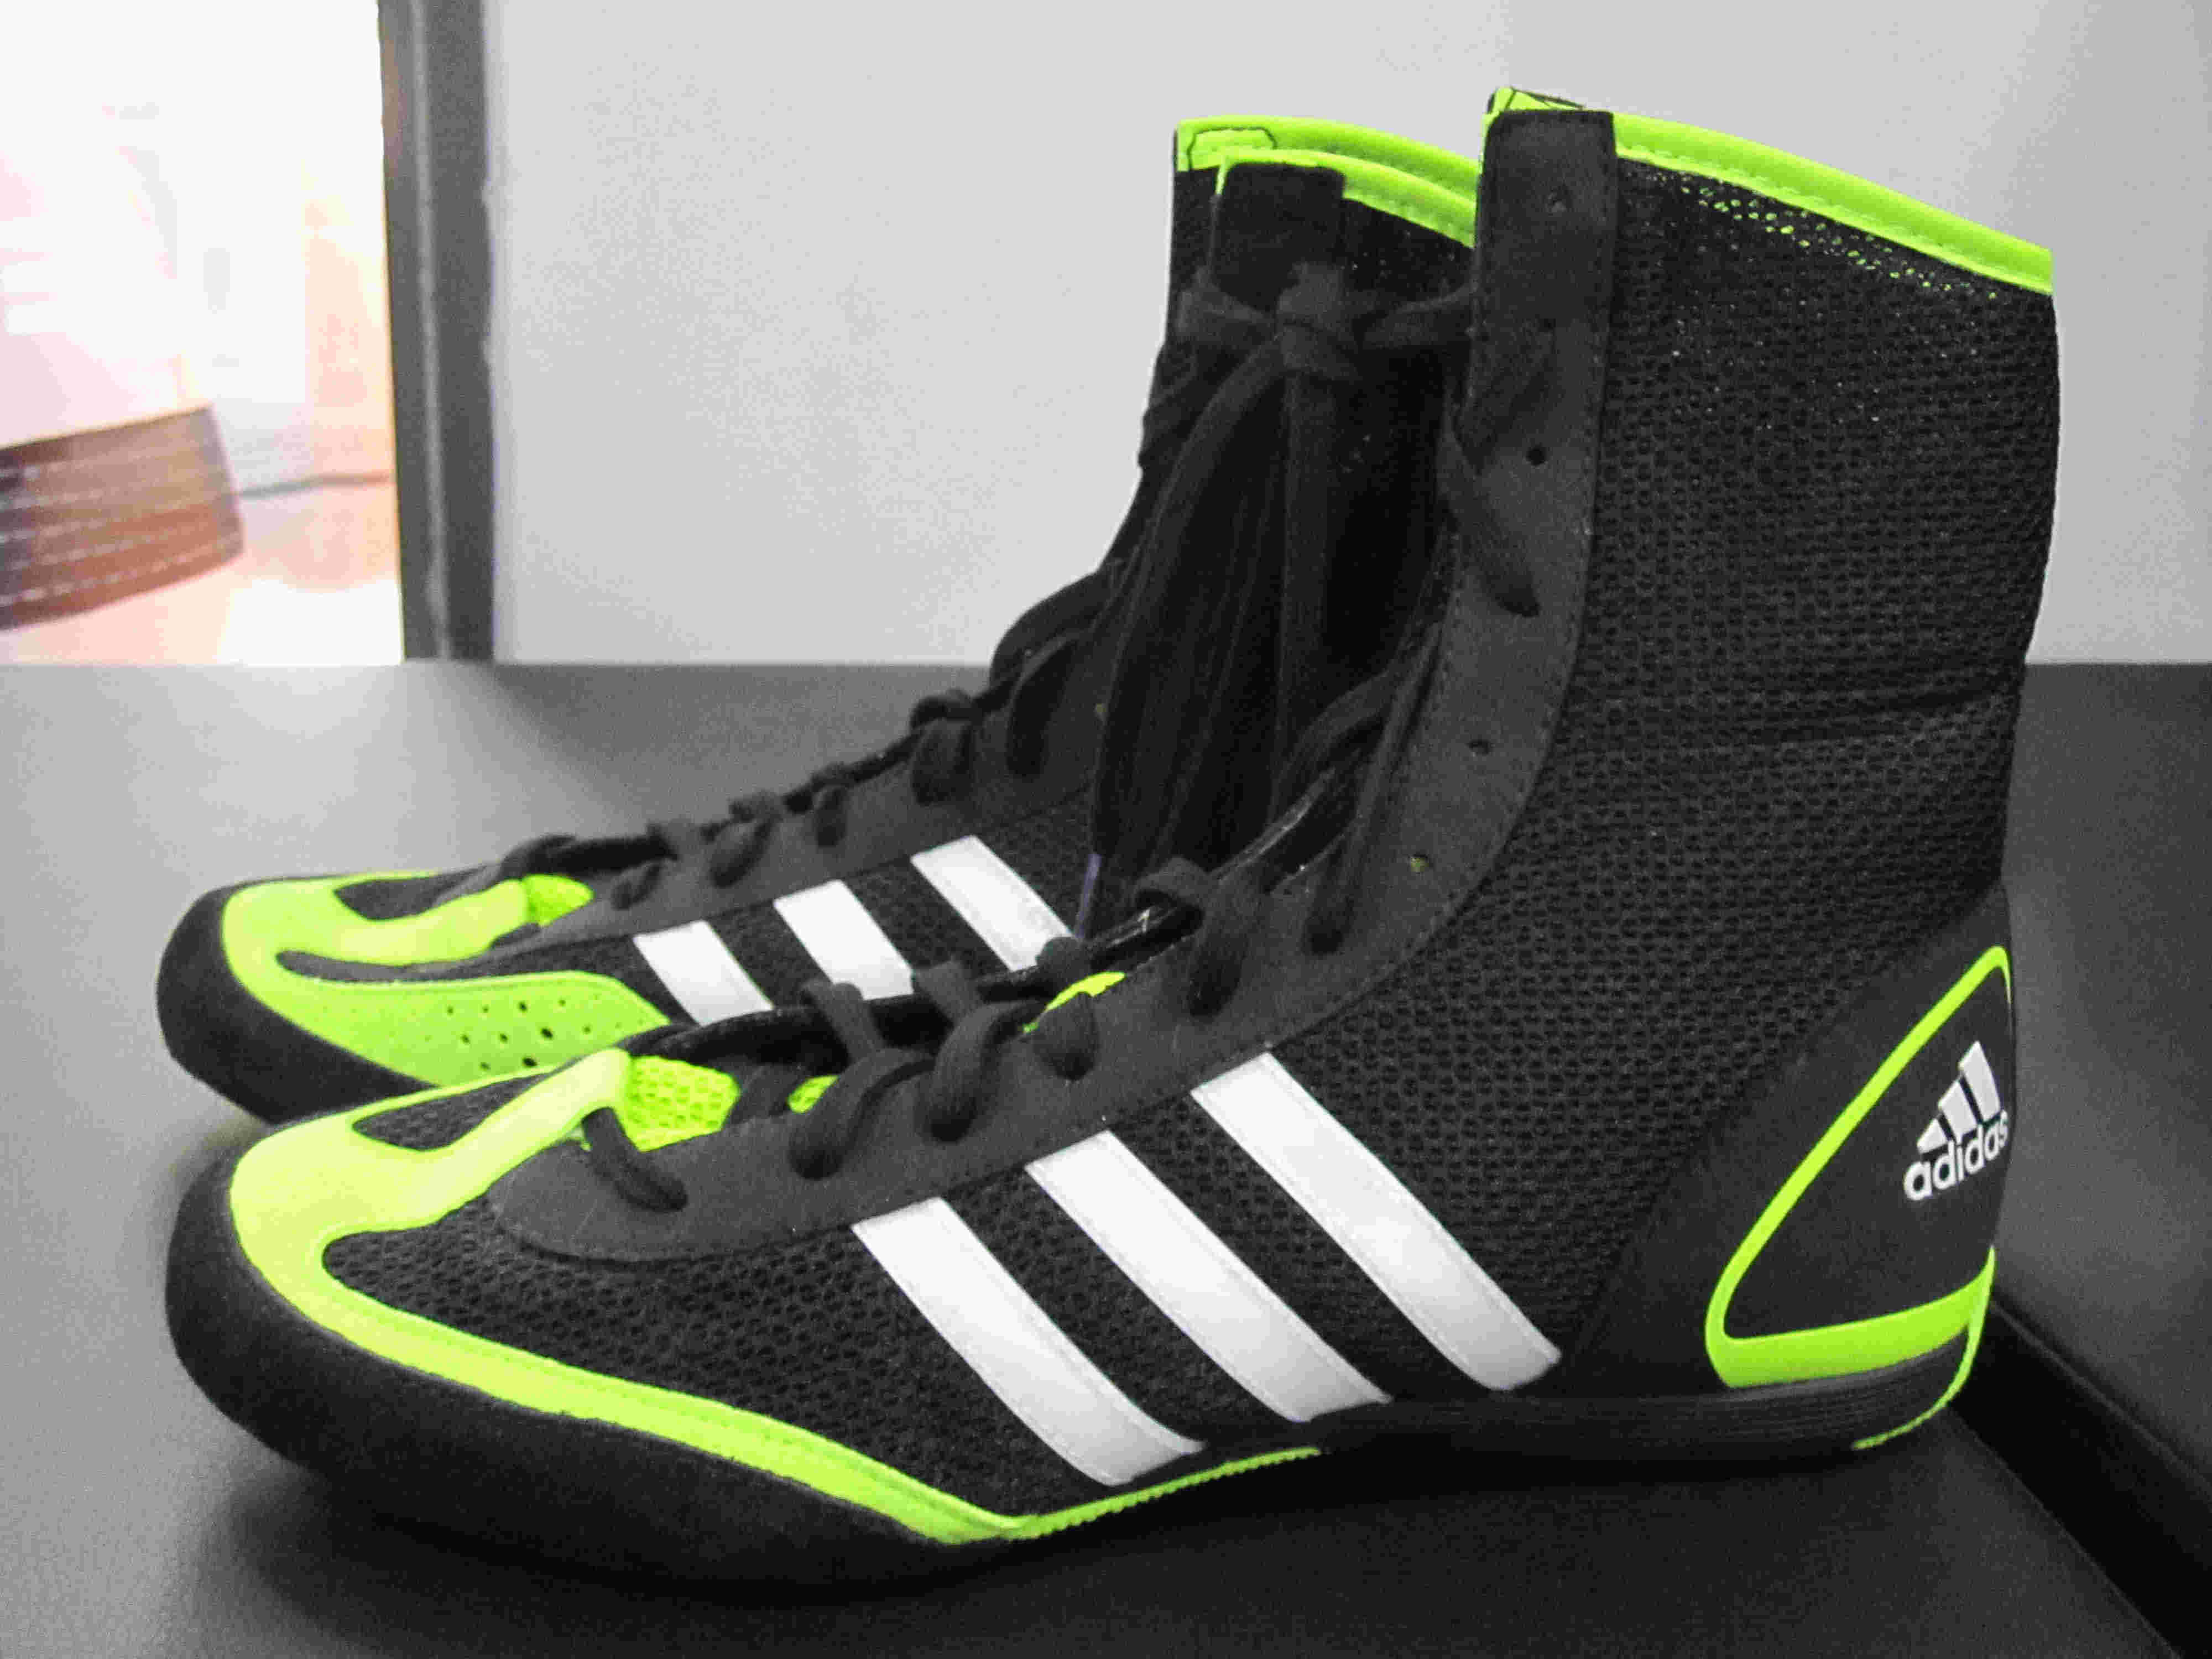 Adidas boxing shoes mid